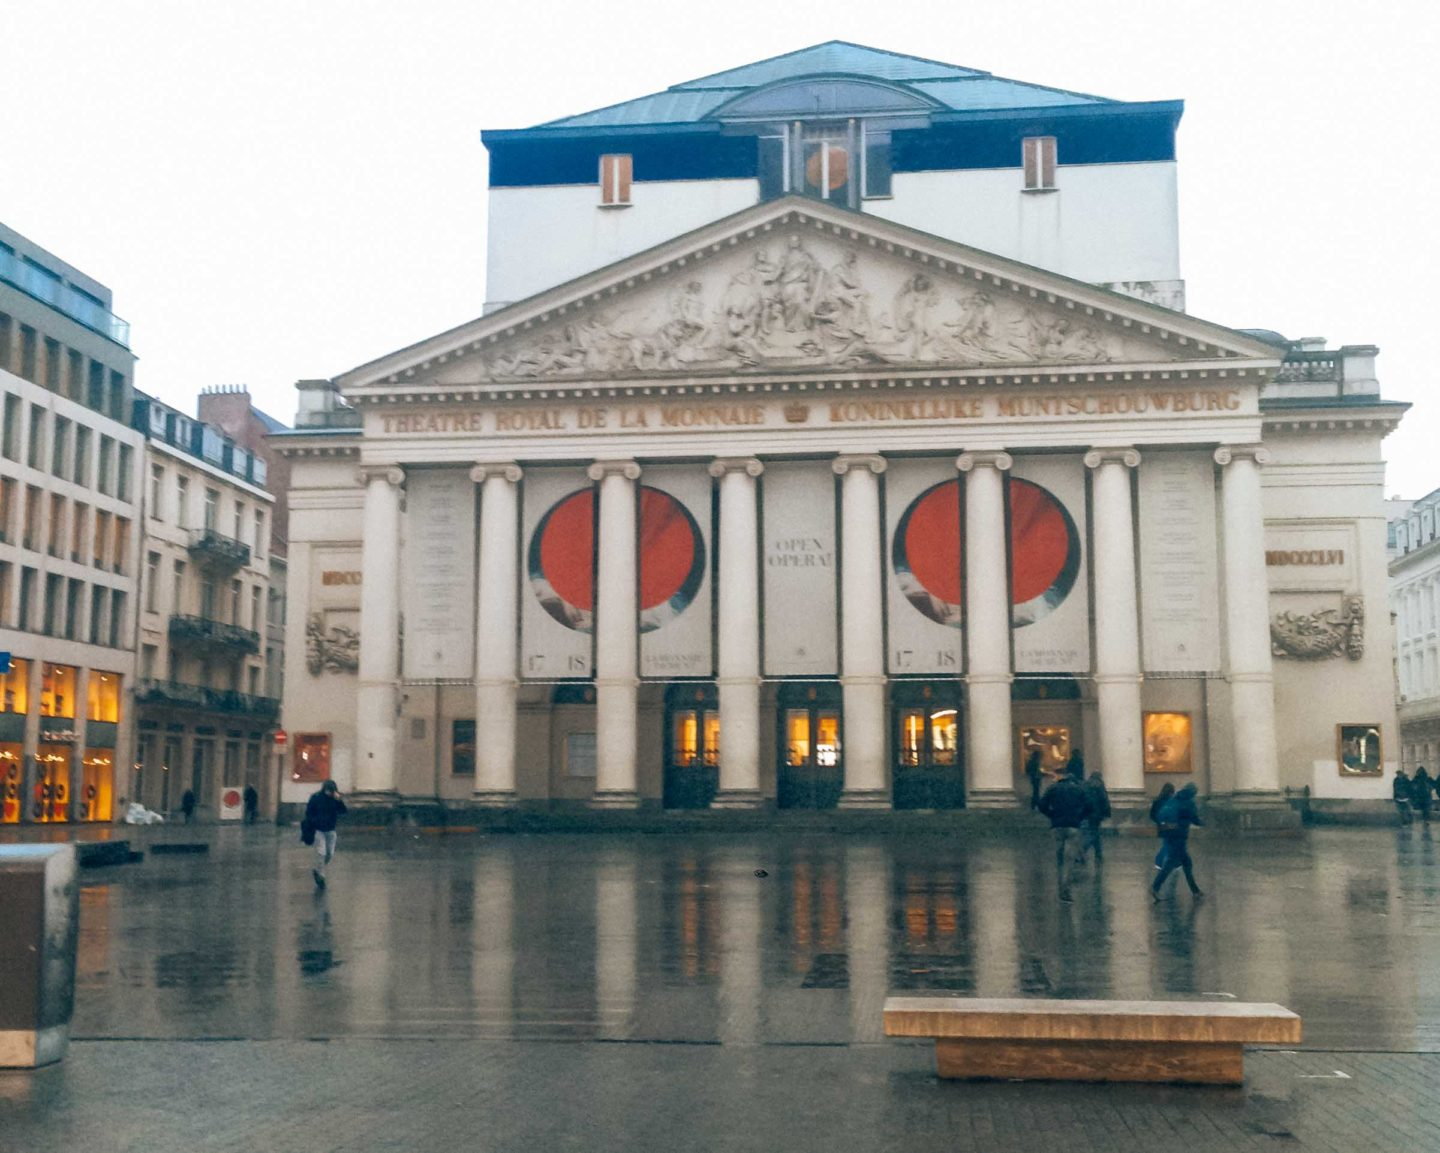 La Monnaie square in Brussels